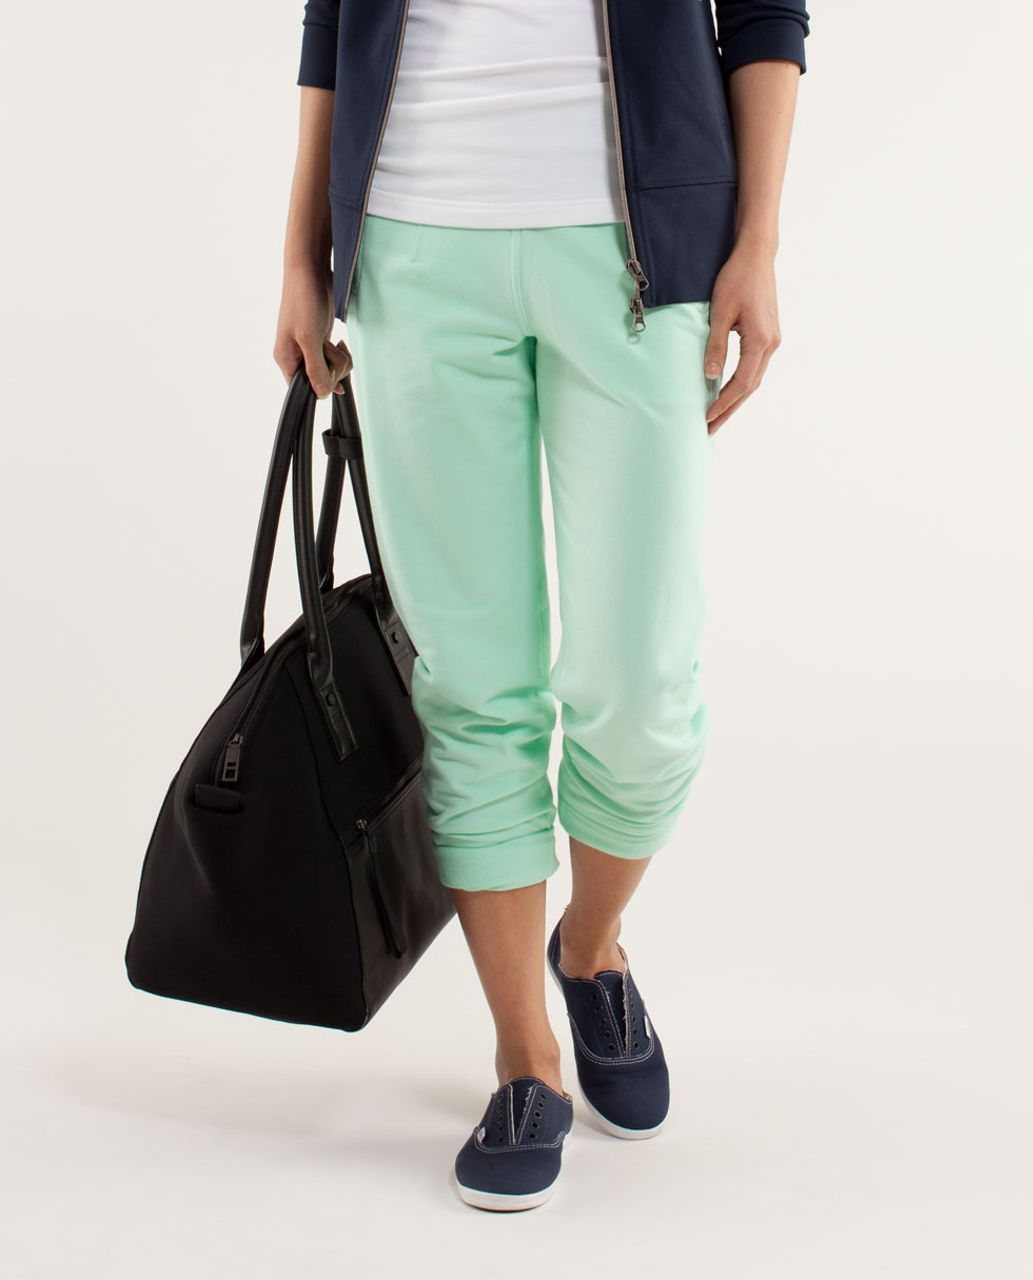 Lululemon Rejuvenate Sweat Pant - Fresh Teal